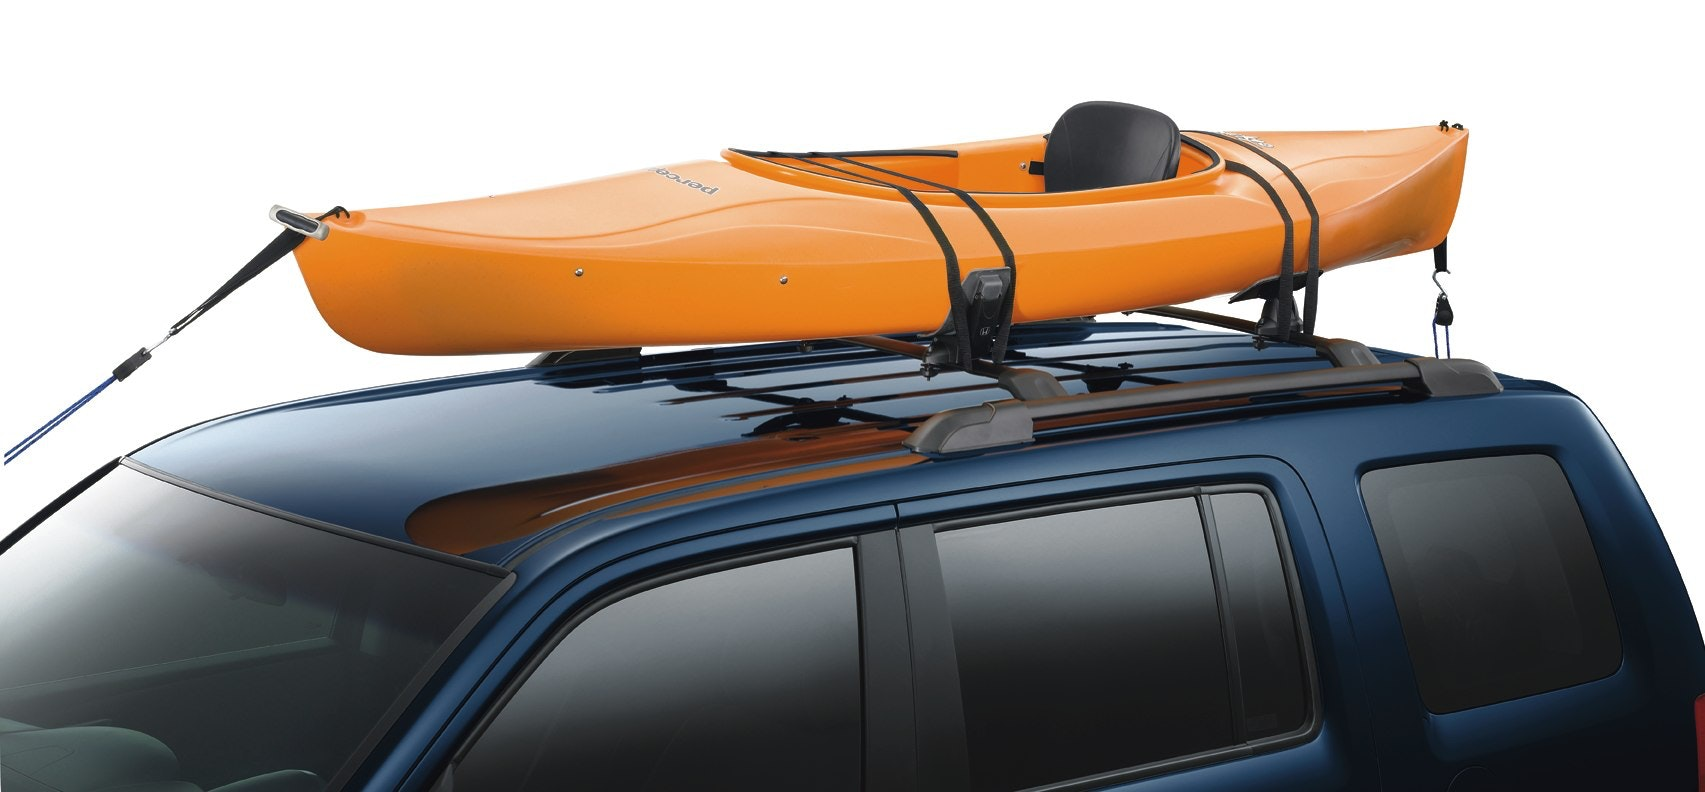 ... Or Headache Rack (if So Equipped). Be Sure To Provide The Appropriate  Padding, And With The Rest Of The Boat Extending Into The Bed, Properly  Secure It.